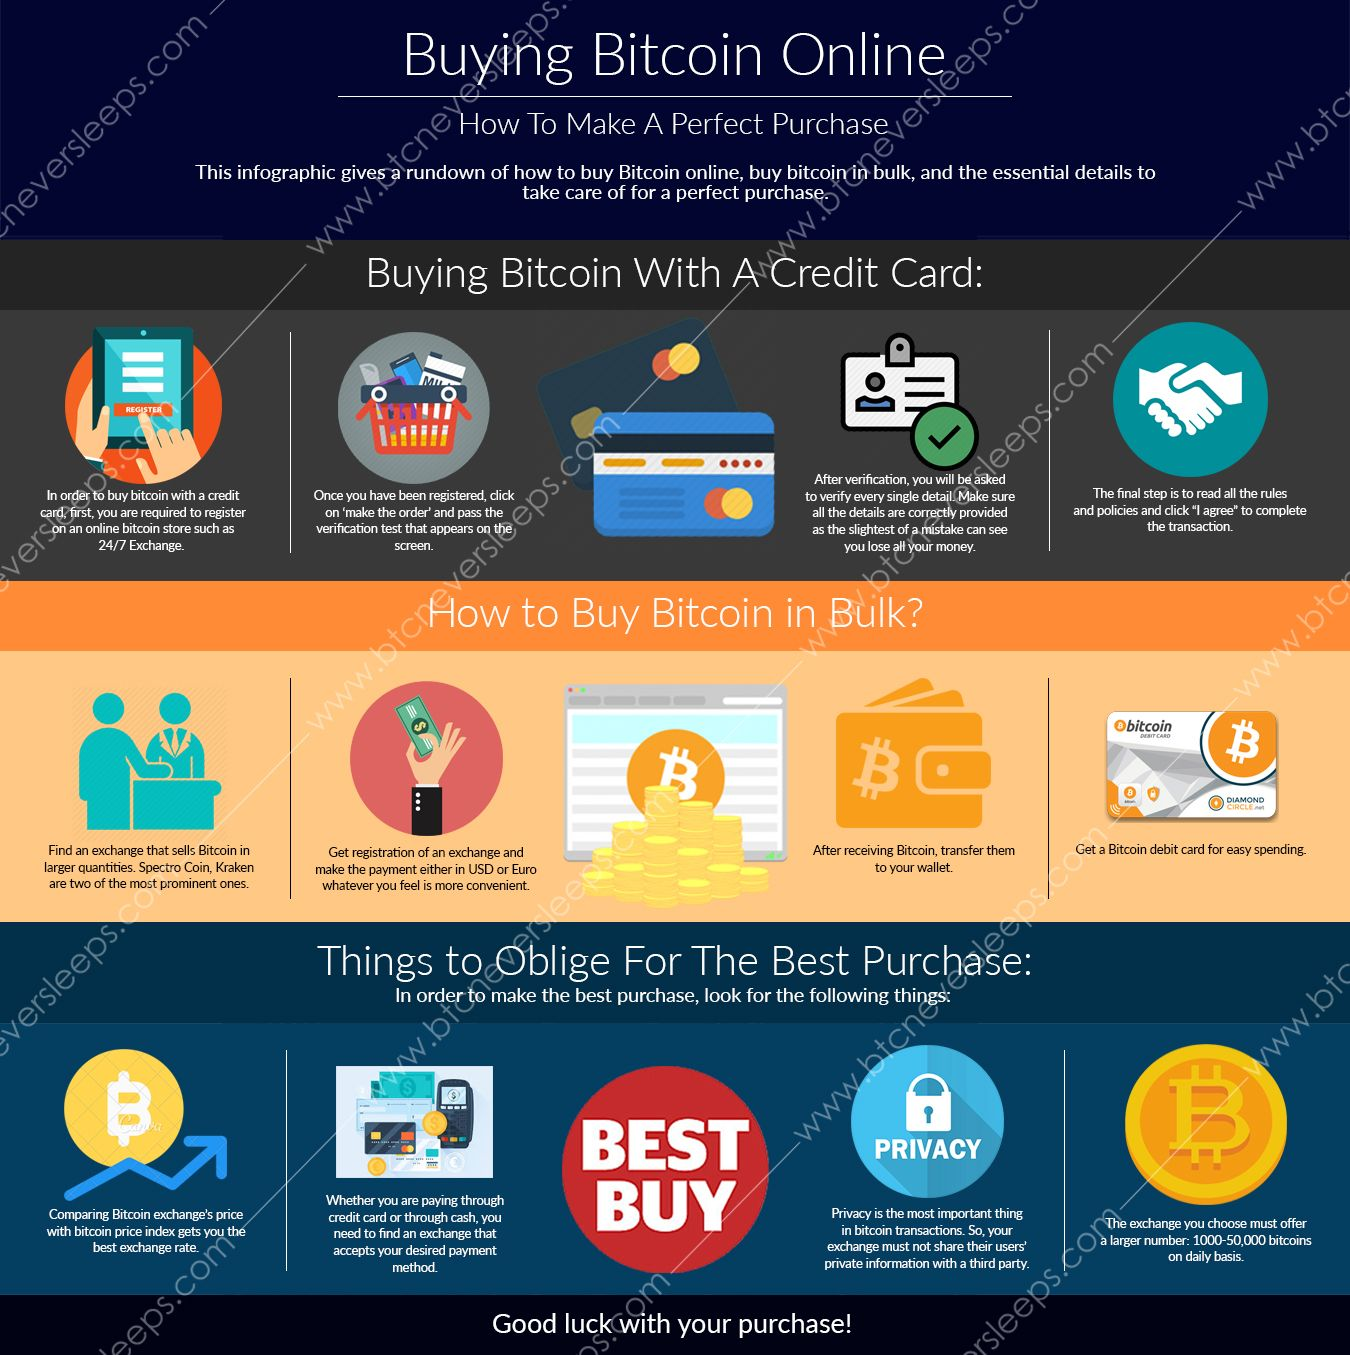 Bitcoin bitcoinnews bitcoinmining bitcointrading bitcointalk buy bitcoin online how to make a perfect purchase ccuart Images